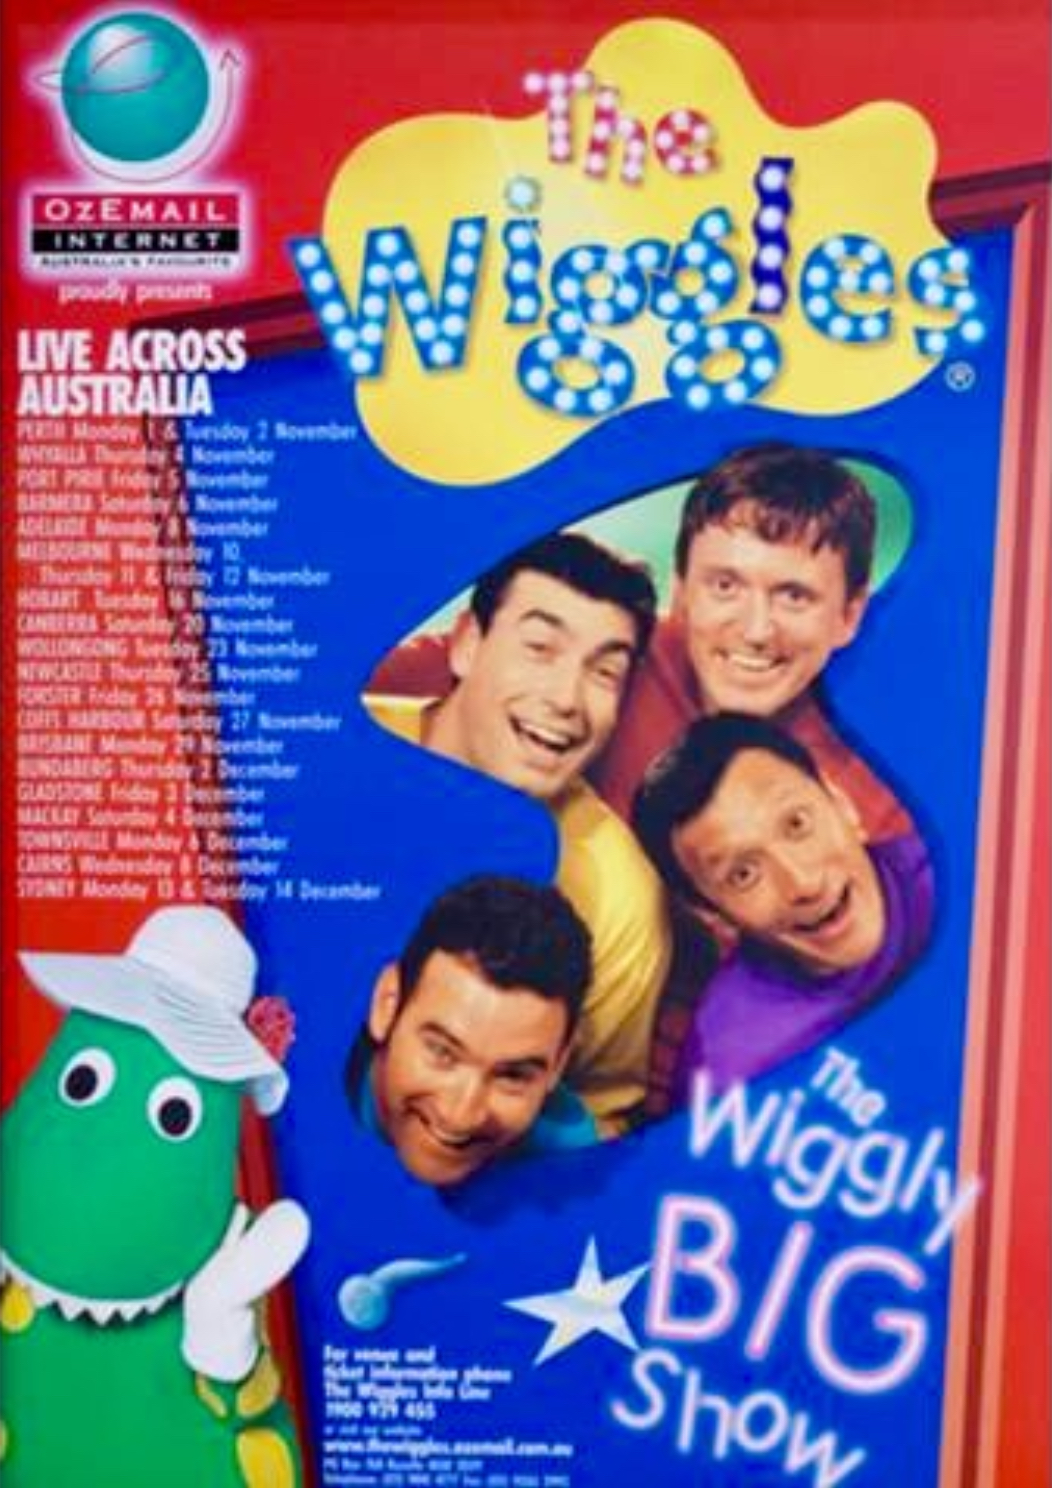 The Wiggly Big Show Tour